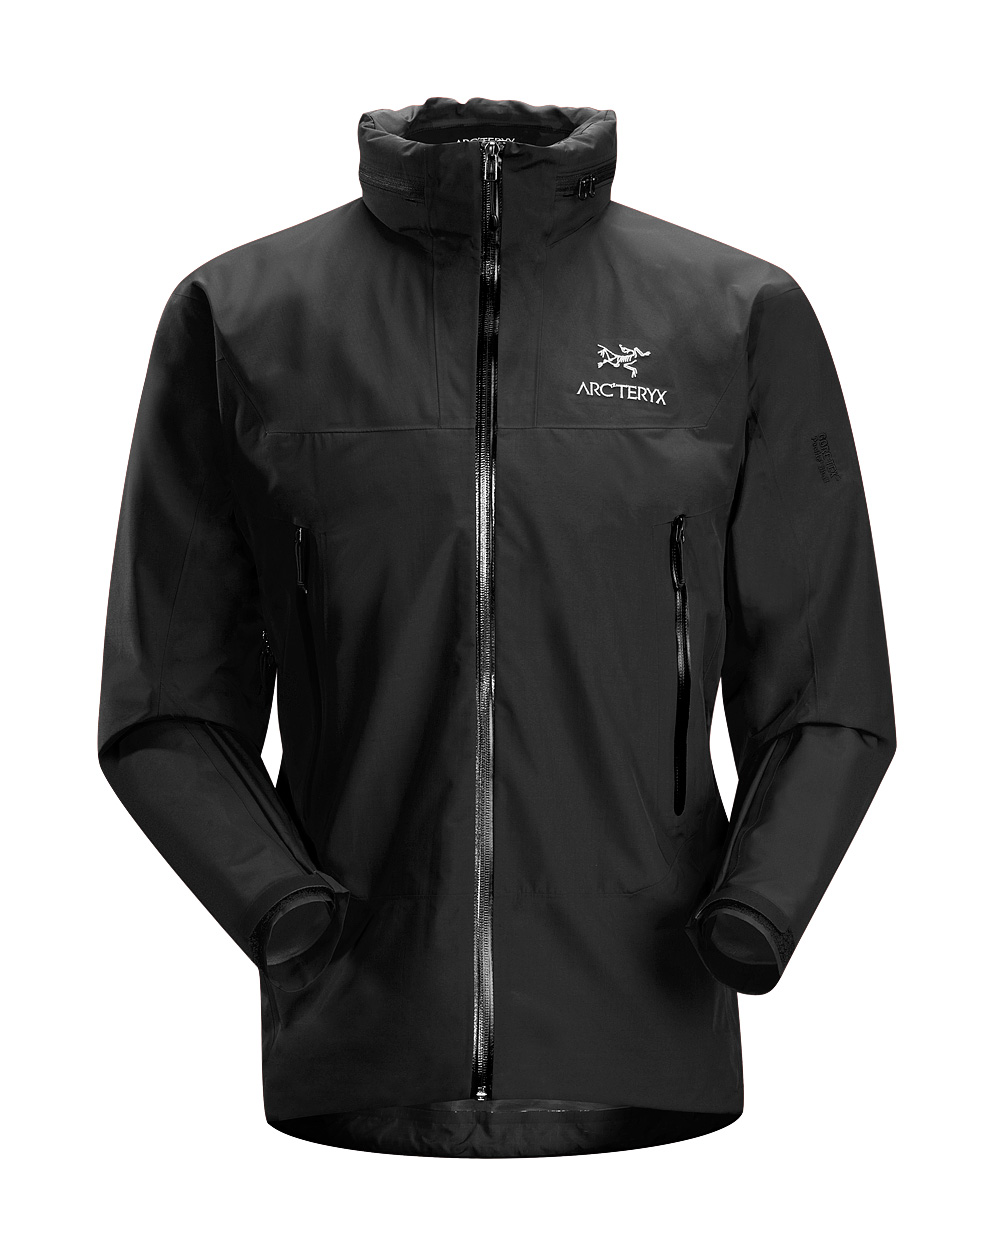 Arcteryx Black Theta SL Hybrid Jacket - New